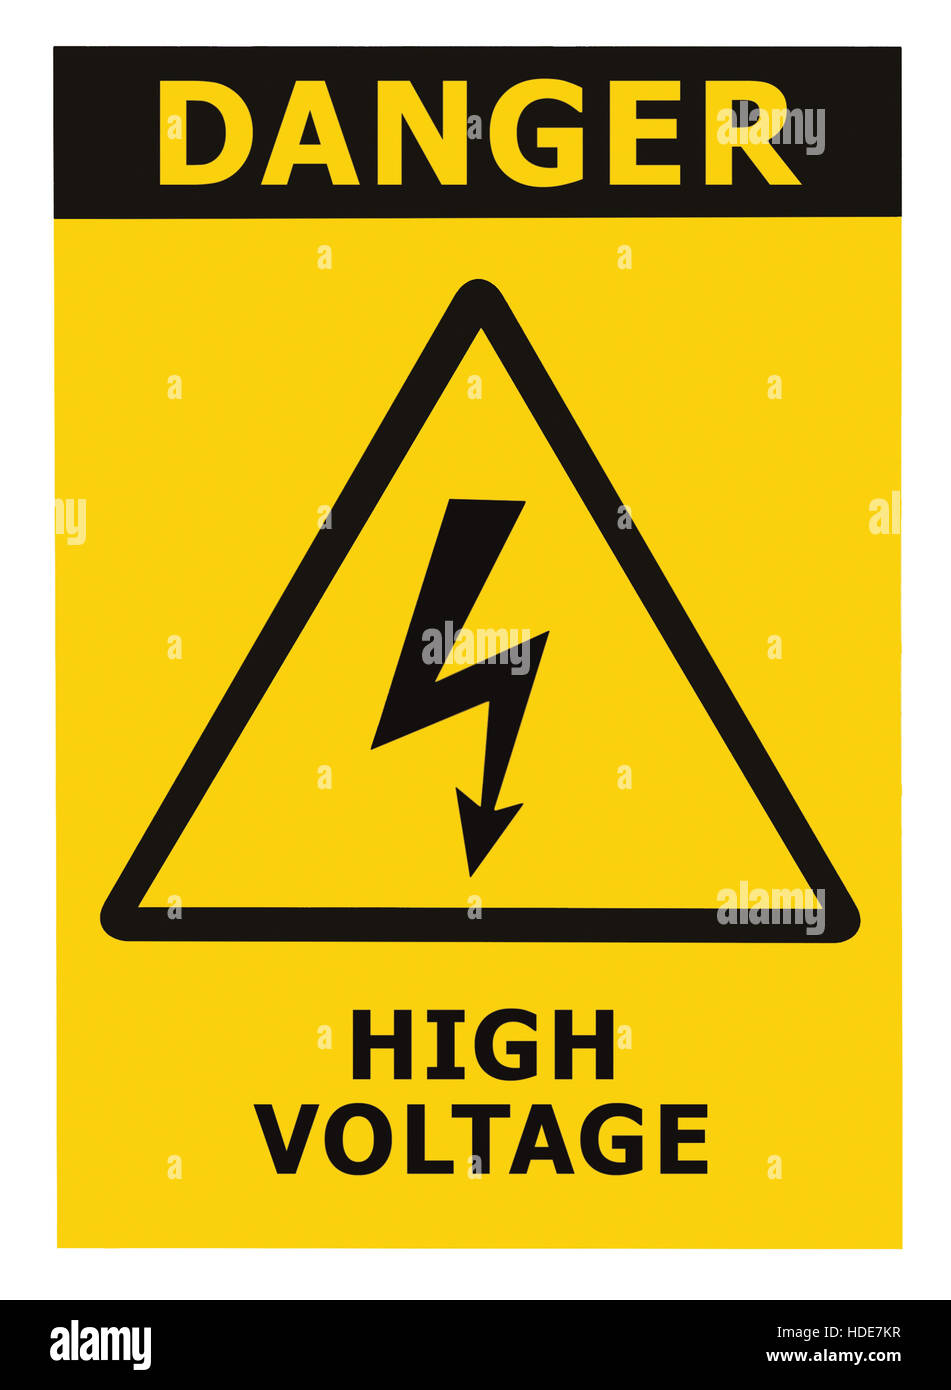 High voltage sign stock photos high voltage sign stock images alamy danger high voltage sign label text isolated large detailed closeup stock image buycottarizona Images